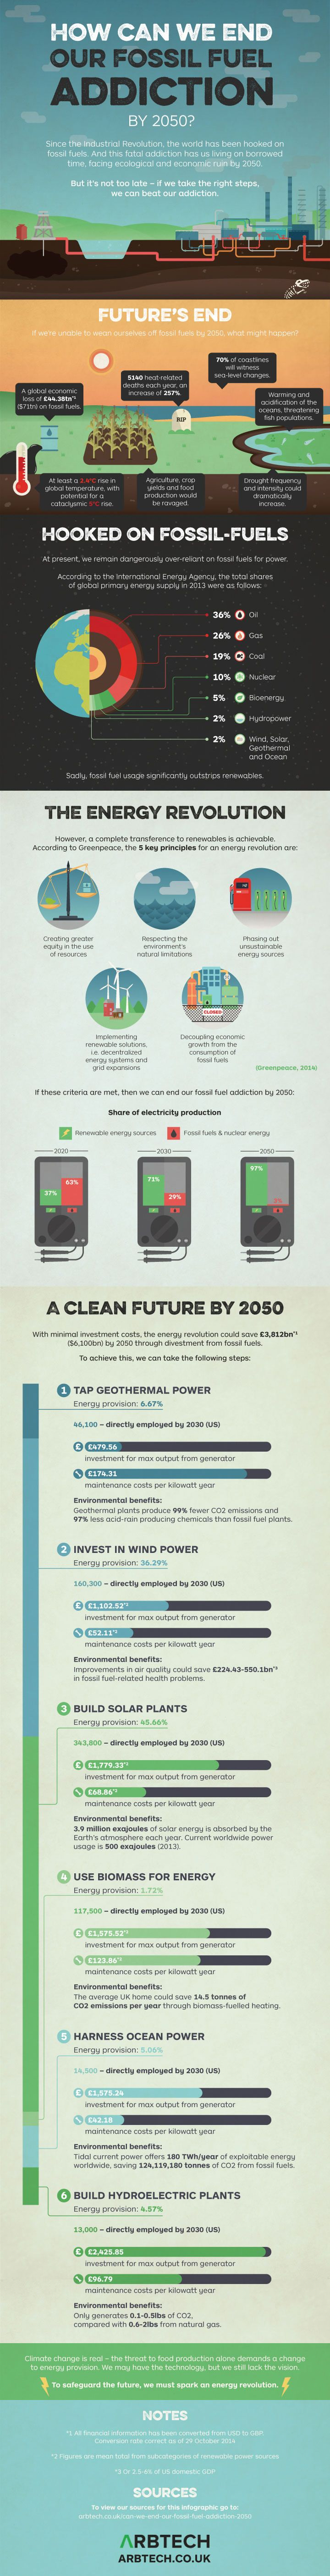 While we remain dangerously over-reliant on fossil-fuel power right now, it isn't too late to make a change. If we take steps in the right direction we can beat our addiction. To safeguard the future, we must spark an energy revolution and if we do, we could end our fossil fuel addiction by 2050. This infographic shows how it could be done.